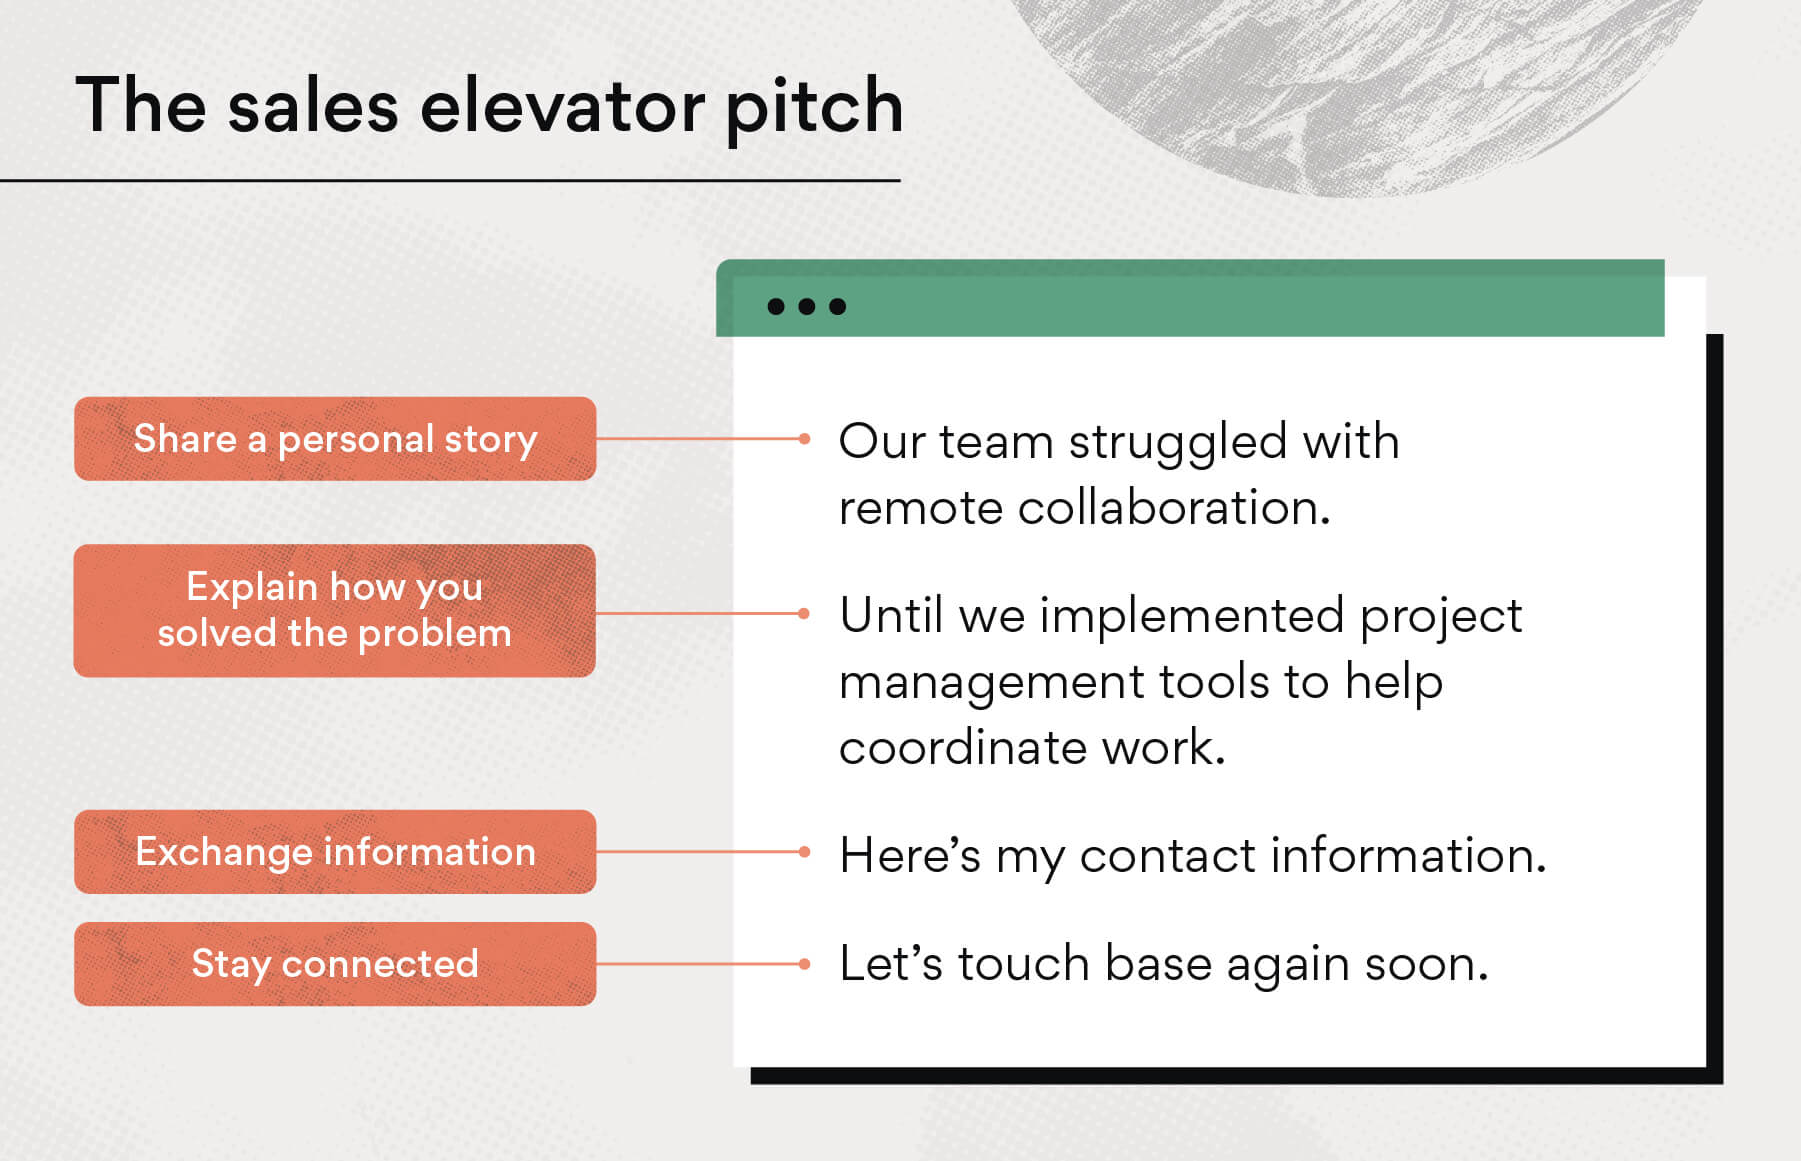 The sales elevator pitch